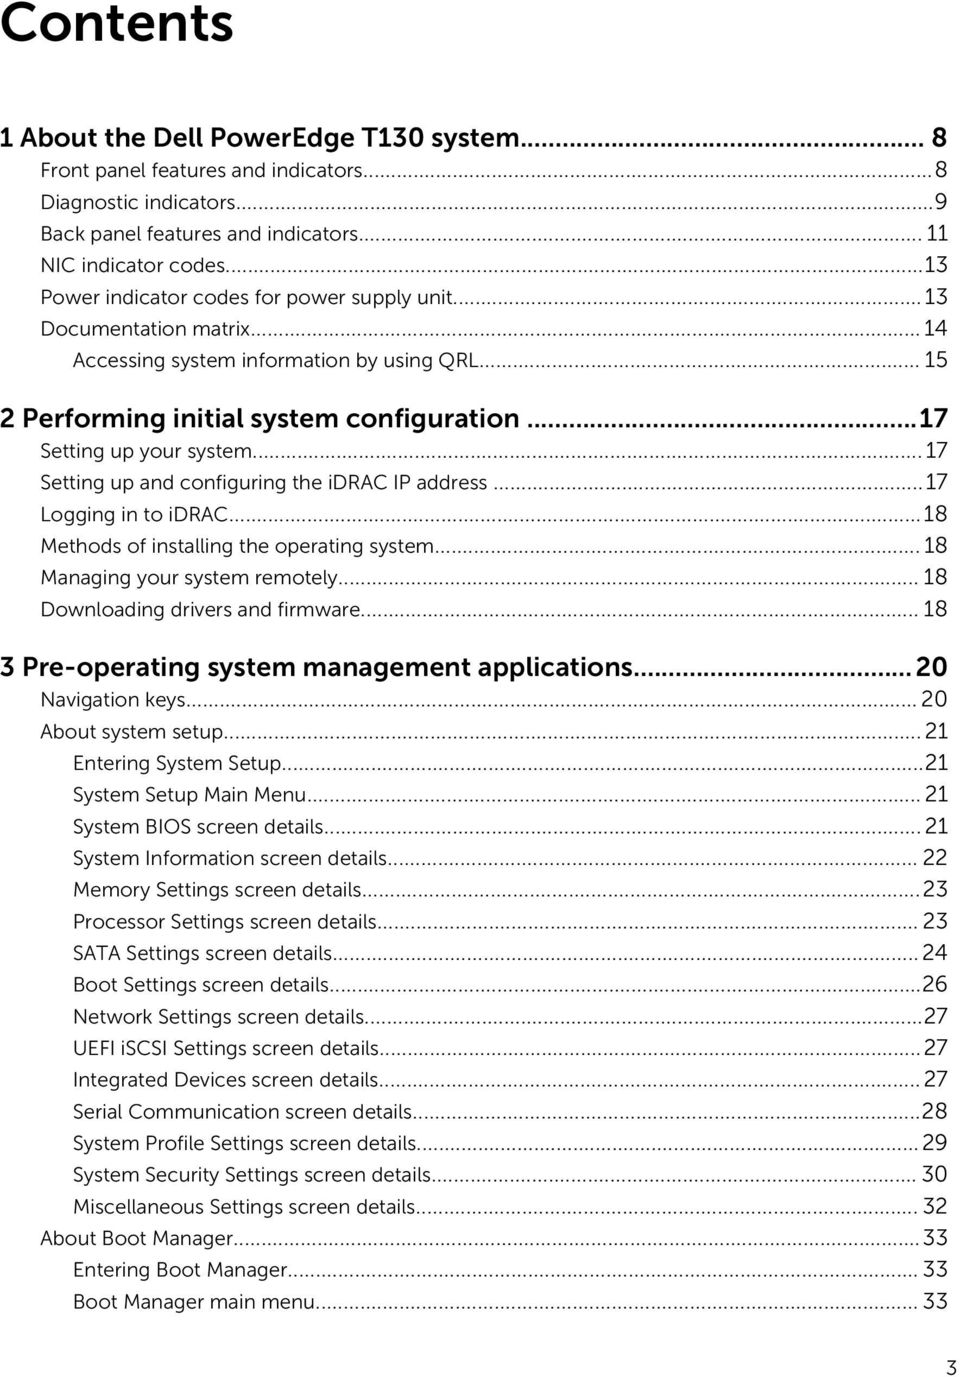 Dell PowerEdge T130 Owner's Manual - PDF